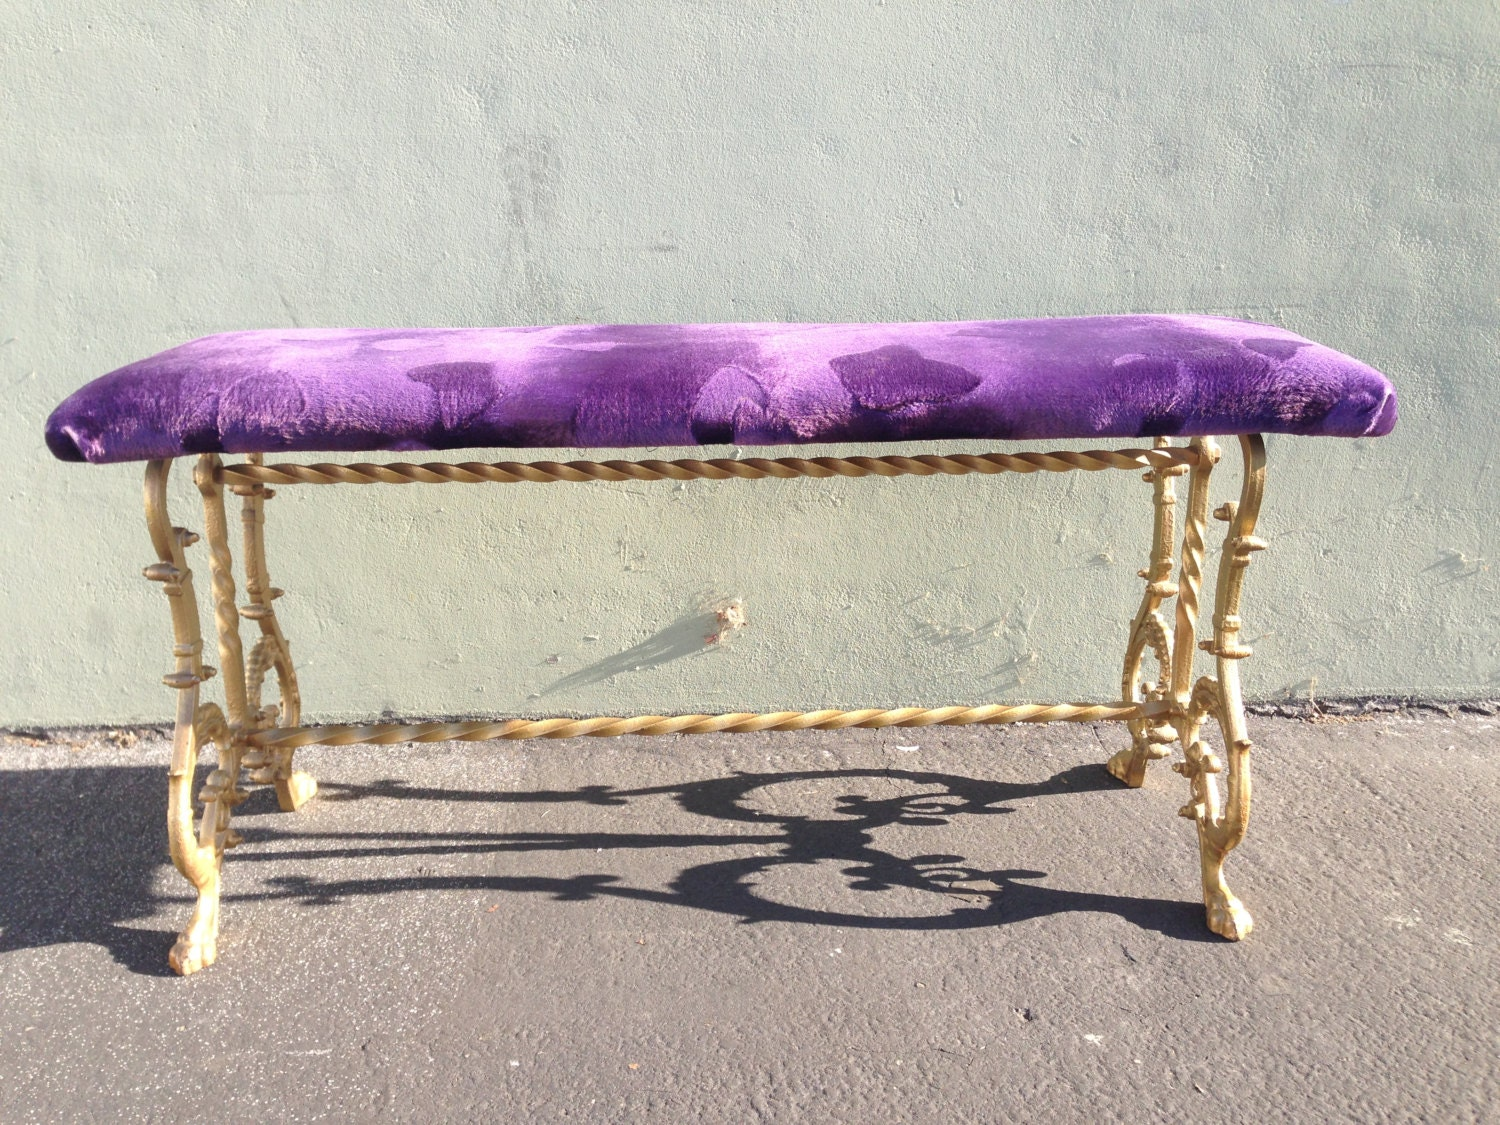 Antique Bench Victorian Art Deco Brass Gold Iron Bed French